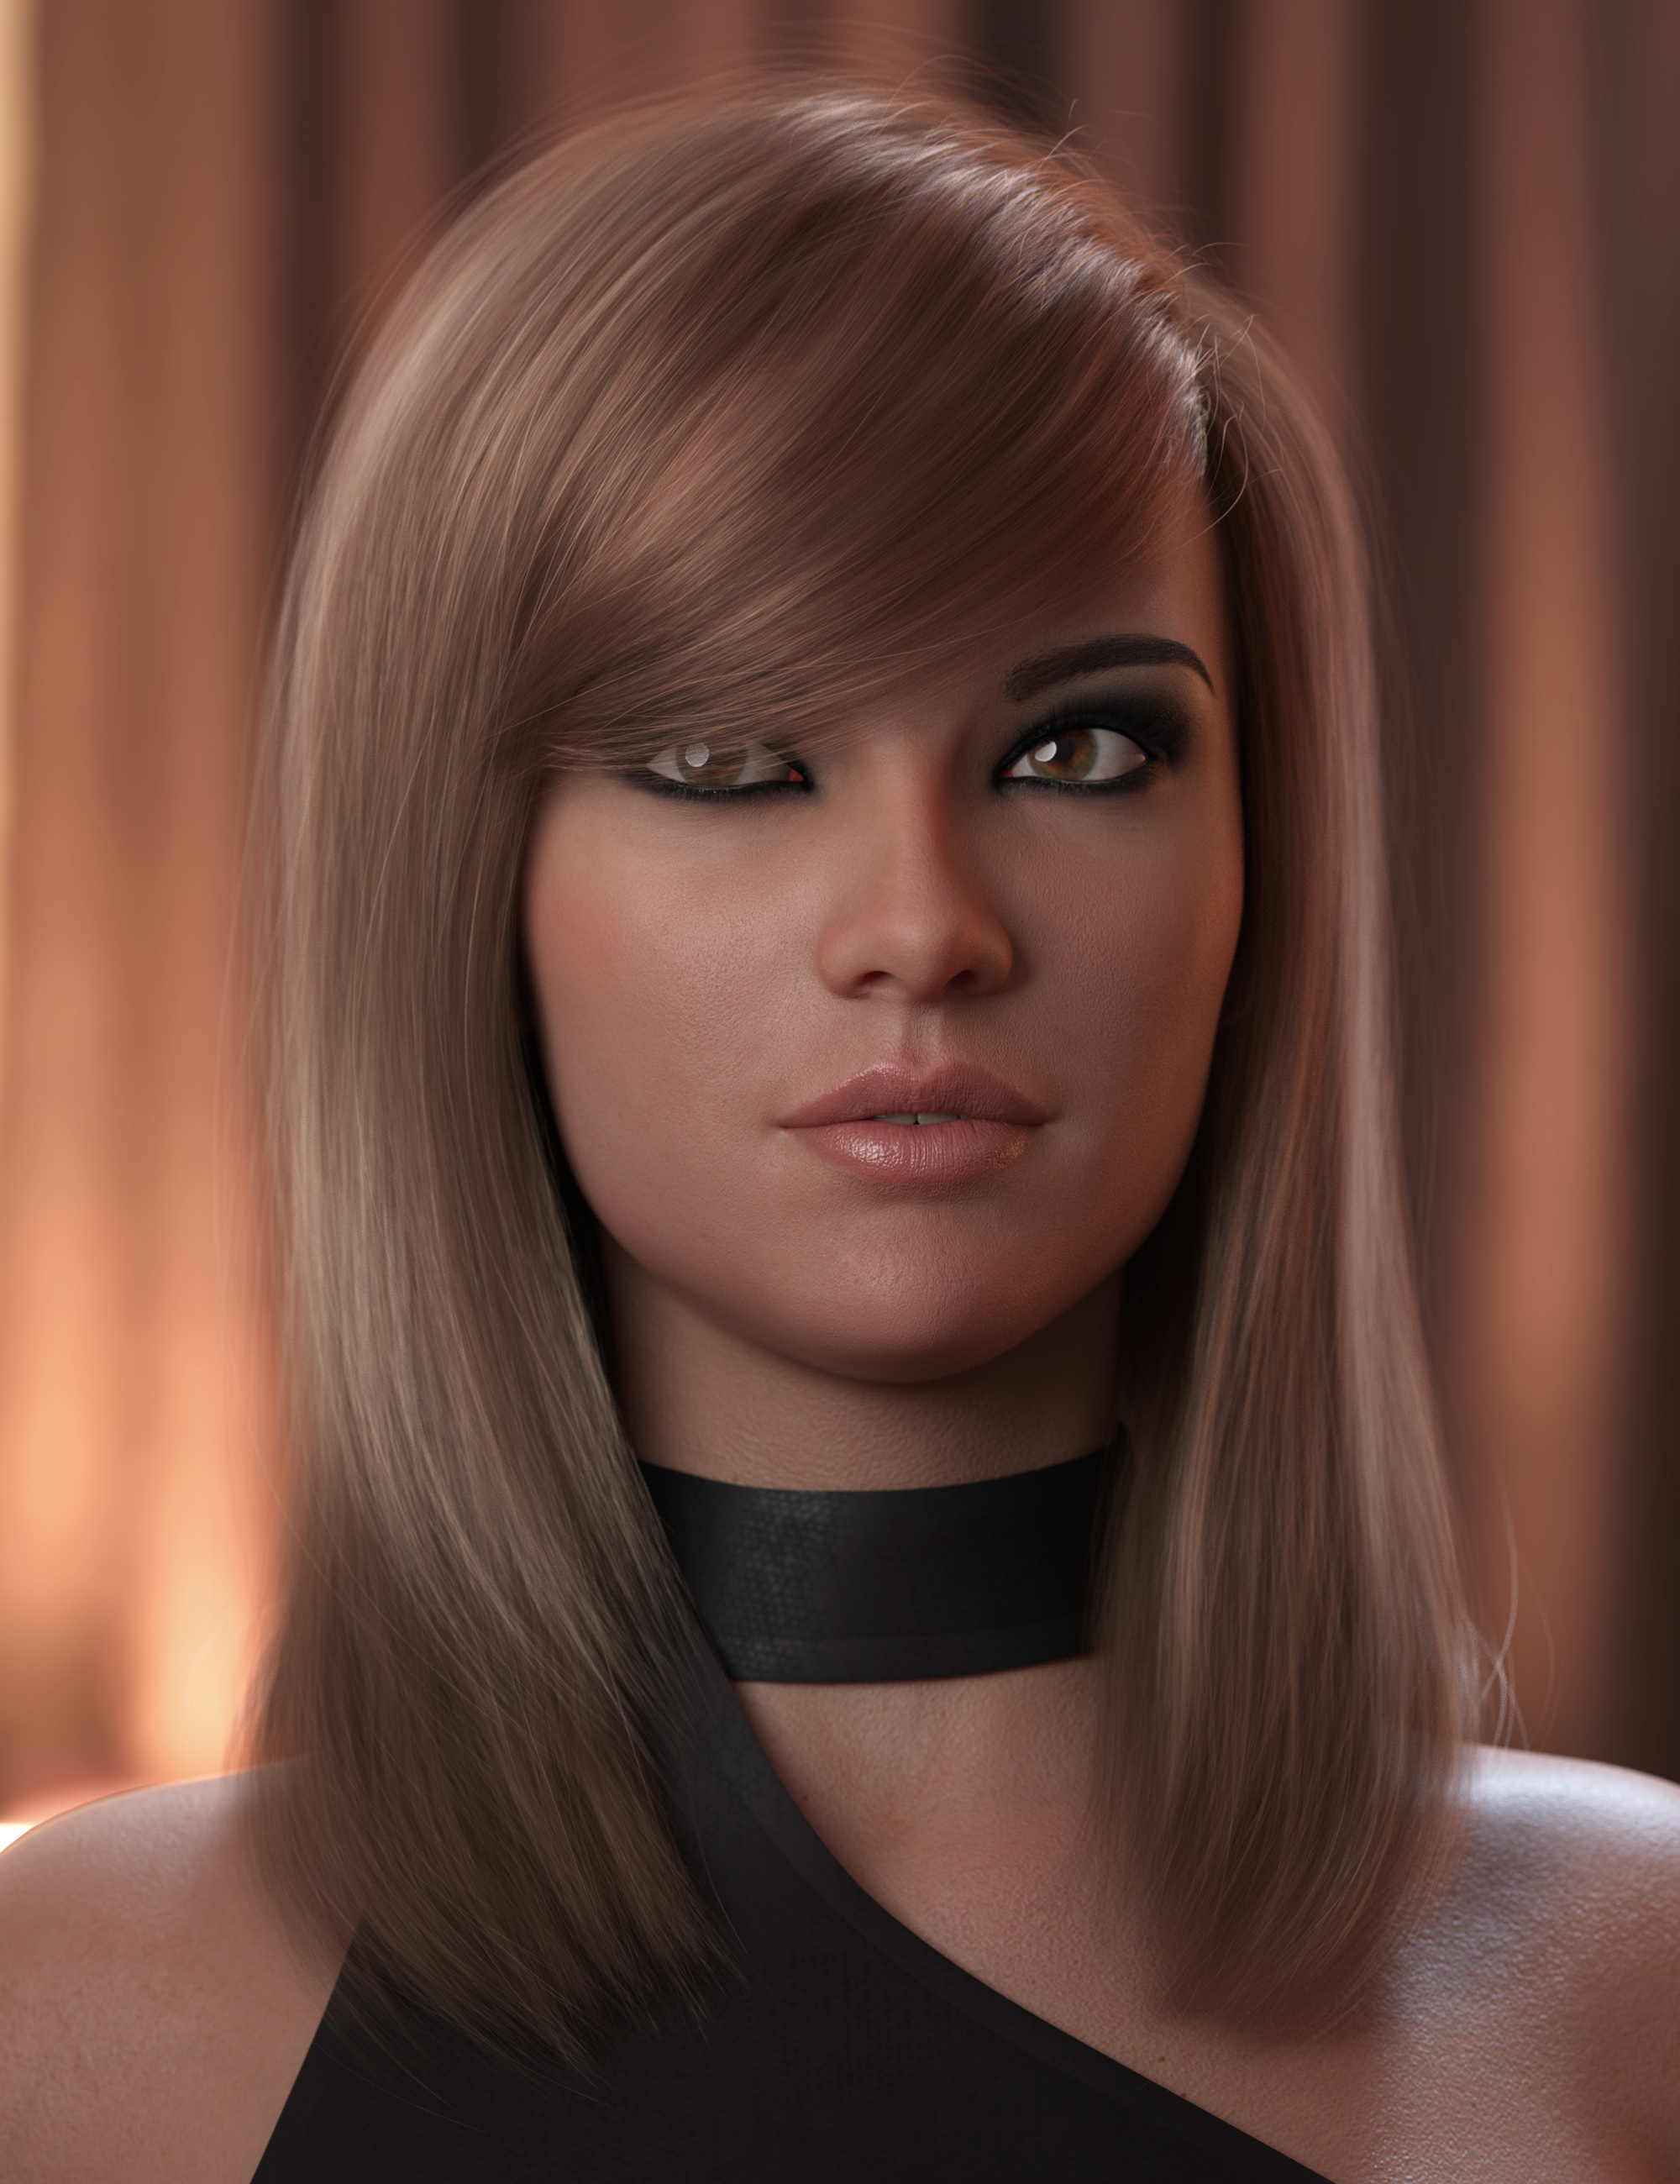 2021-03 Hair for Genesis 8 and 8.1 Females by: outoftouch, 3D Models by Daz 3D